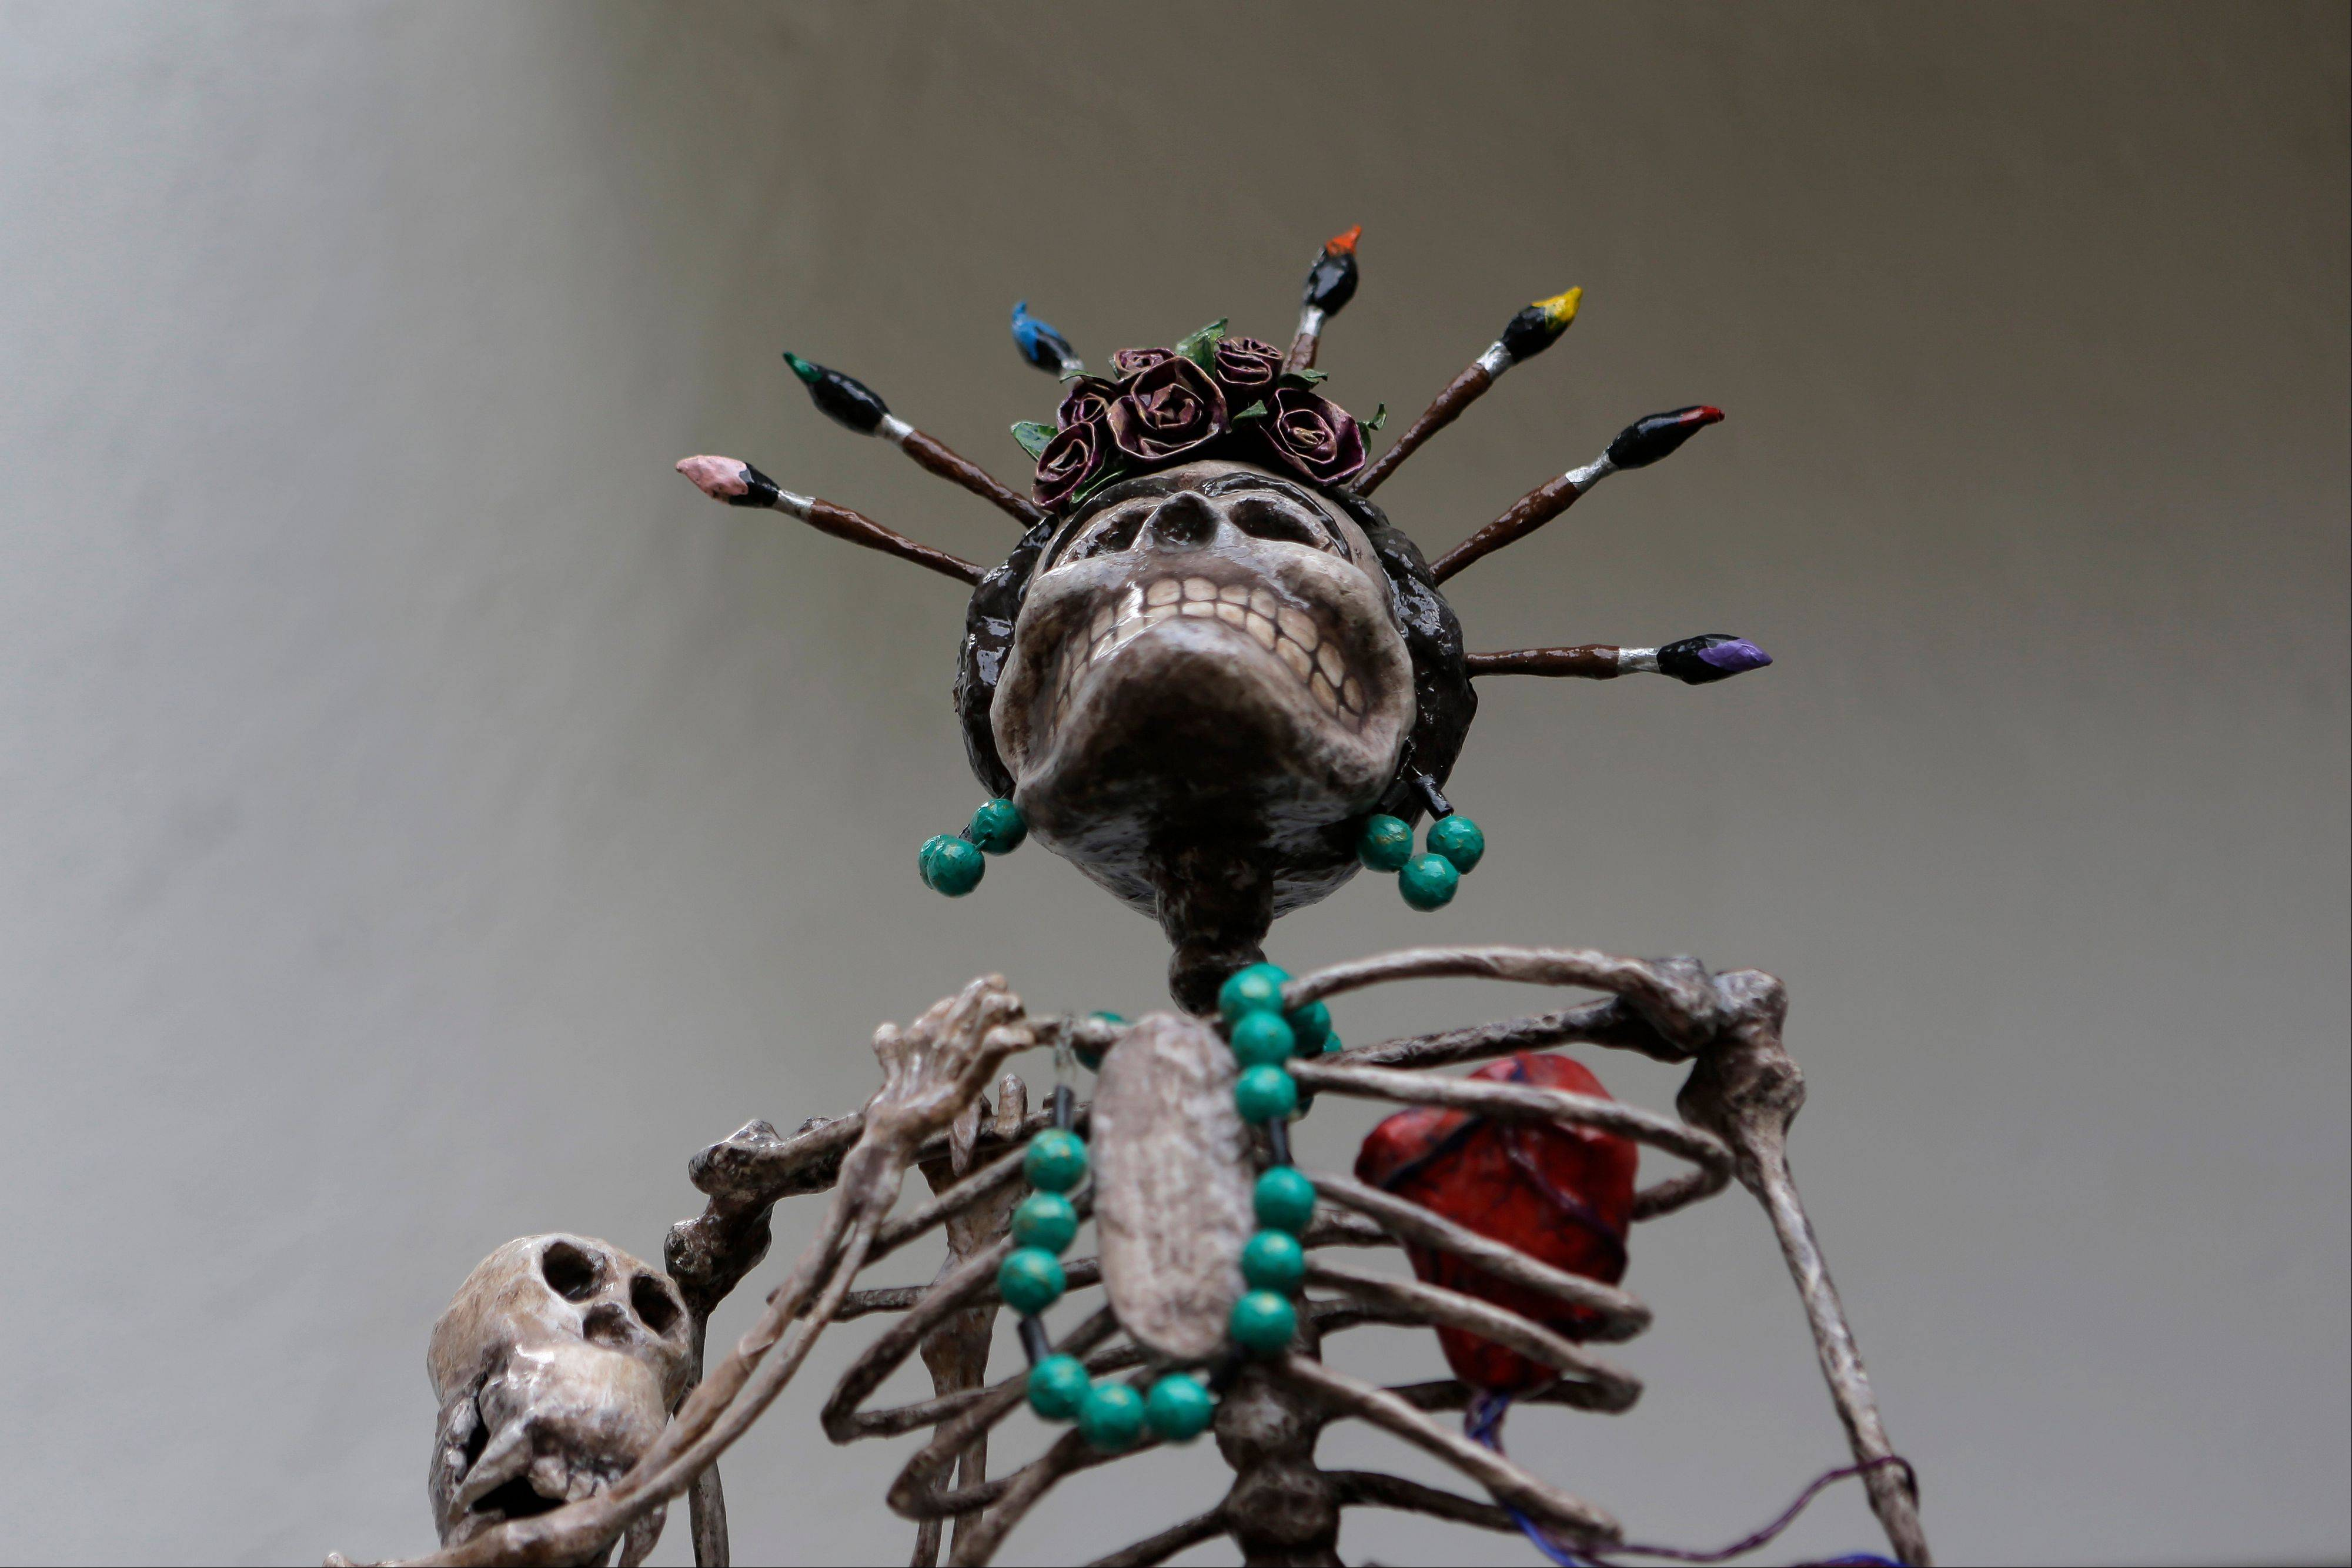 A skeleton sculpture depicting late Mexican artist Frida Kahlo stands on display at the Frida Kahlo museum in Mexico City, Tuesday, Oct. 2, 2012. A full collection from Kahlo's wardrobe will go on public display Nov. 22 in Mexico City after being locked for nearly 50 years in her armoires and dressers: jewelry, shoes and clothes that still carry the scent of the late artist's perfume and cigarette smoke or stains from painting.